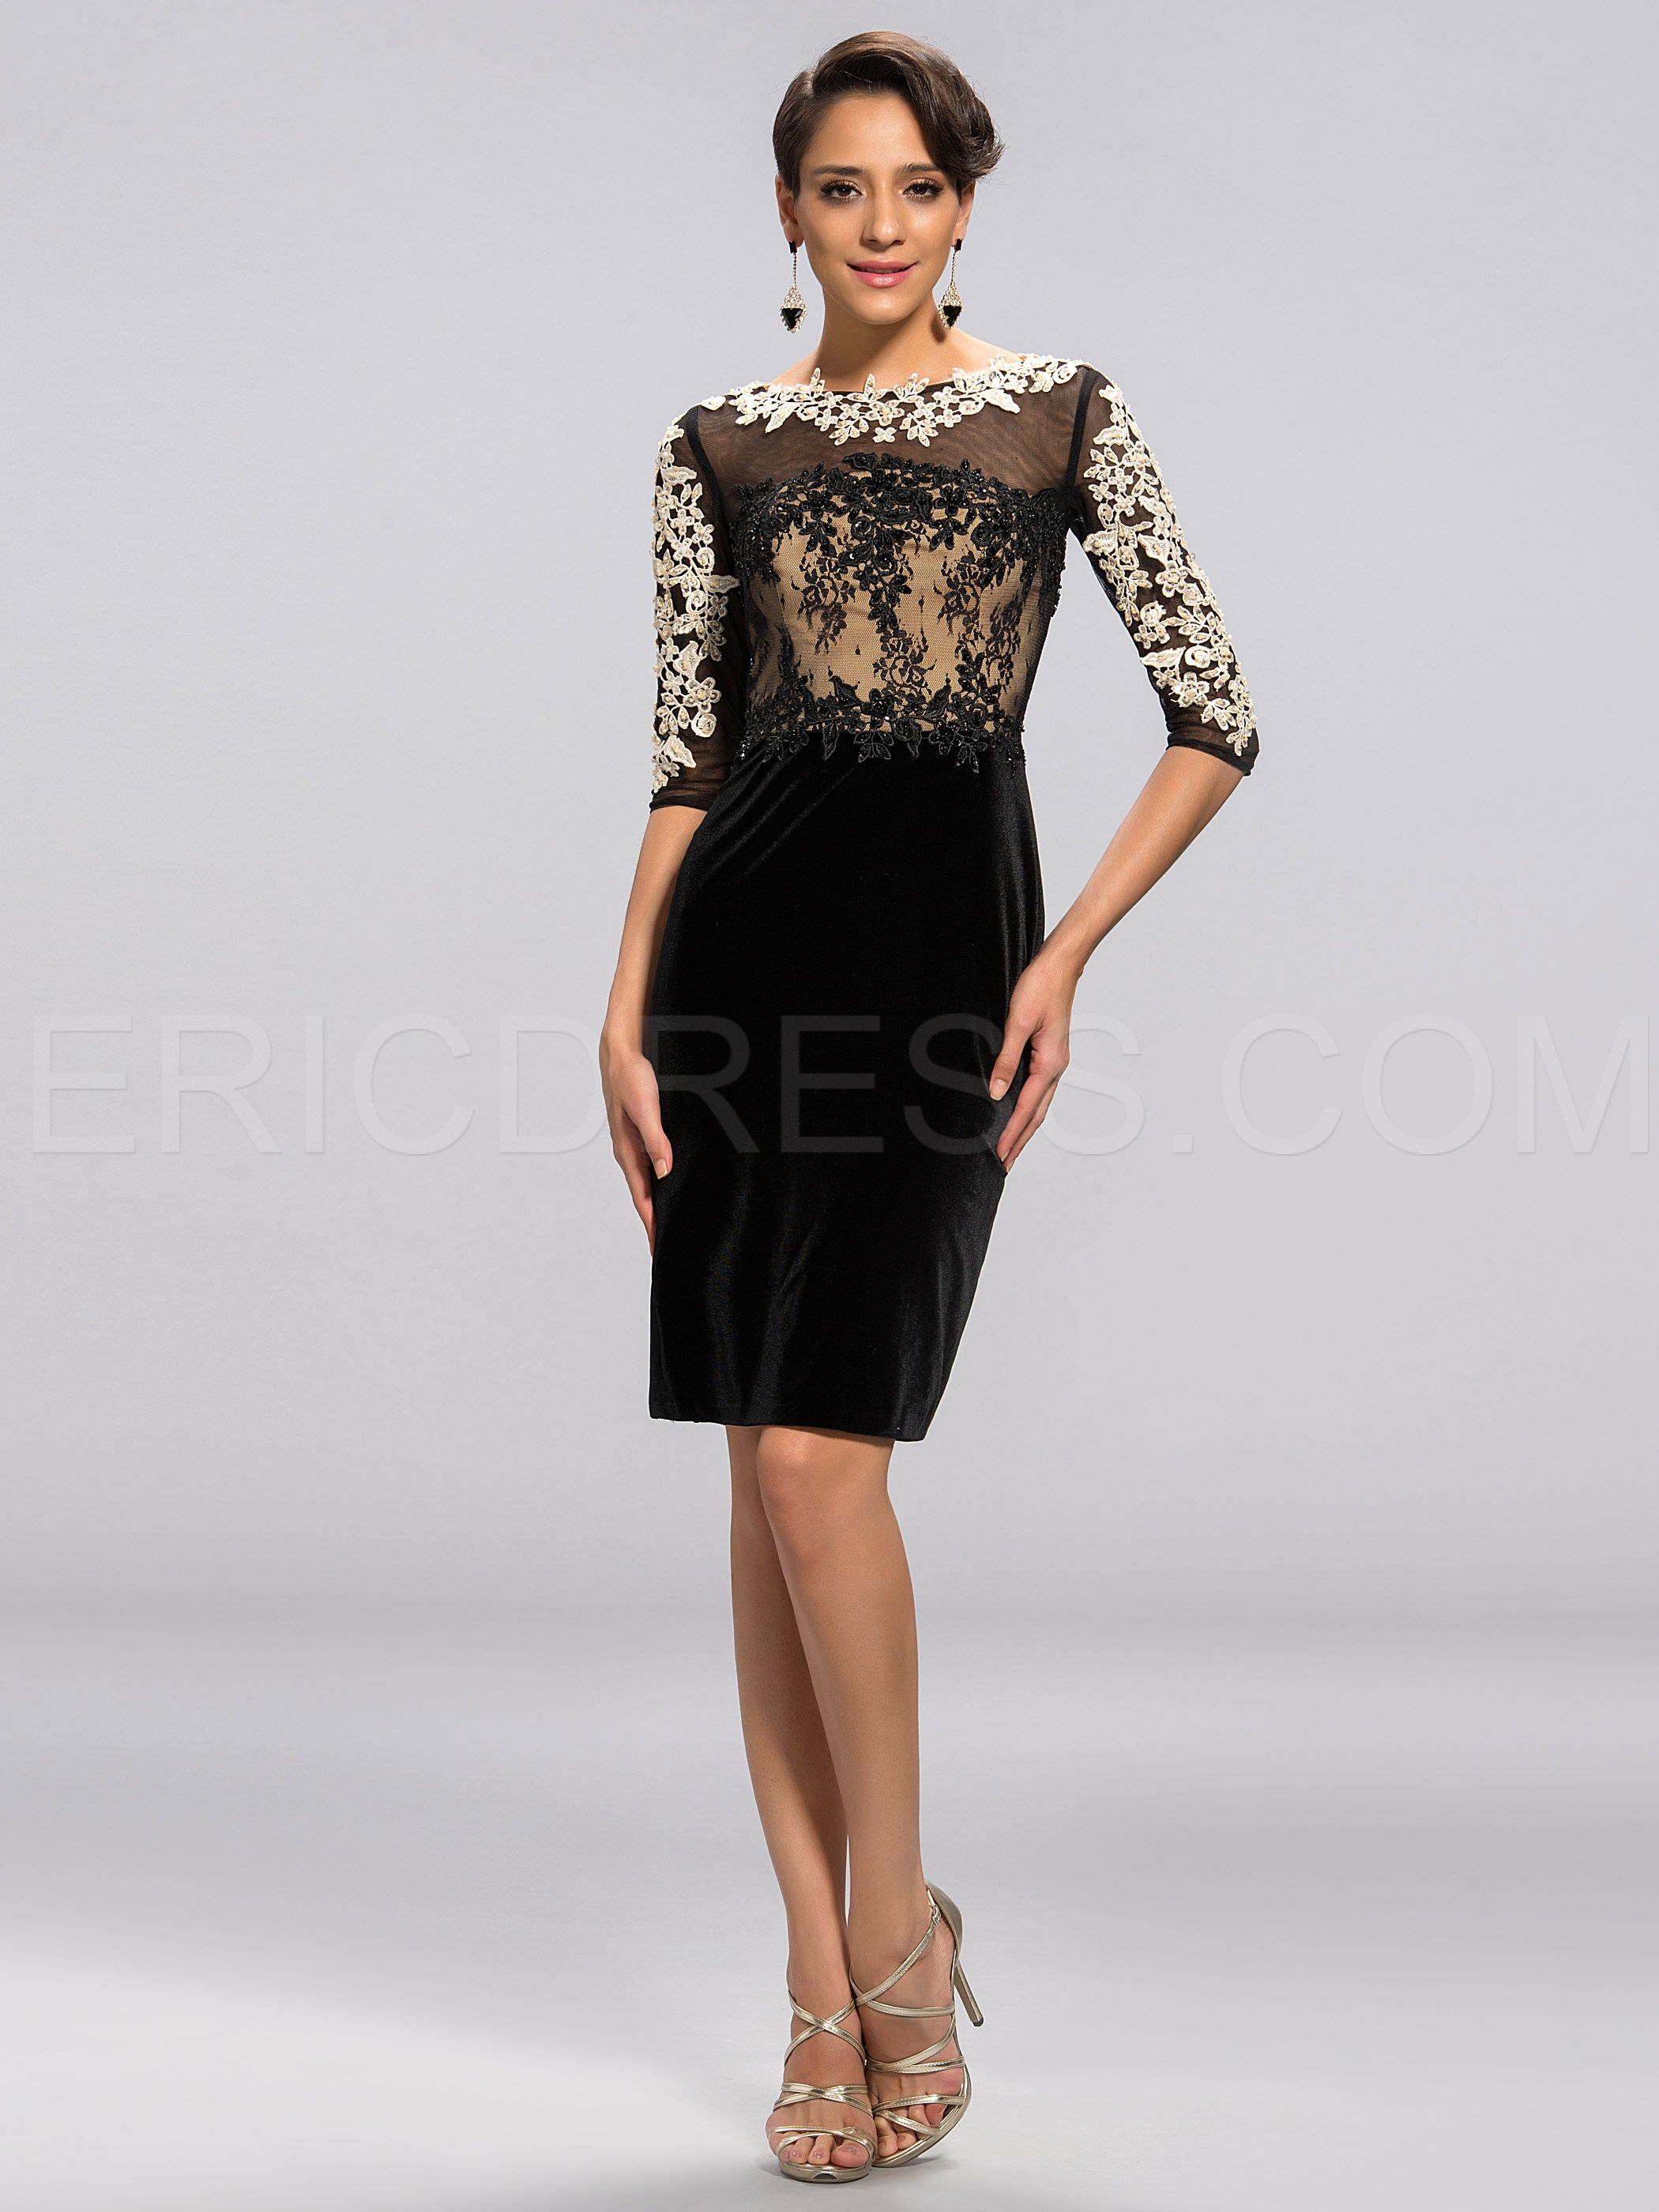 28531f41895 Elegant Sheath Scoop Half-Sleeves Applique Knee-Length Mother Dress  Designer Dresses- ericdress.com 11051168